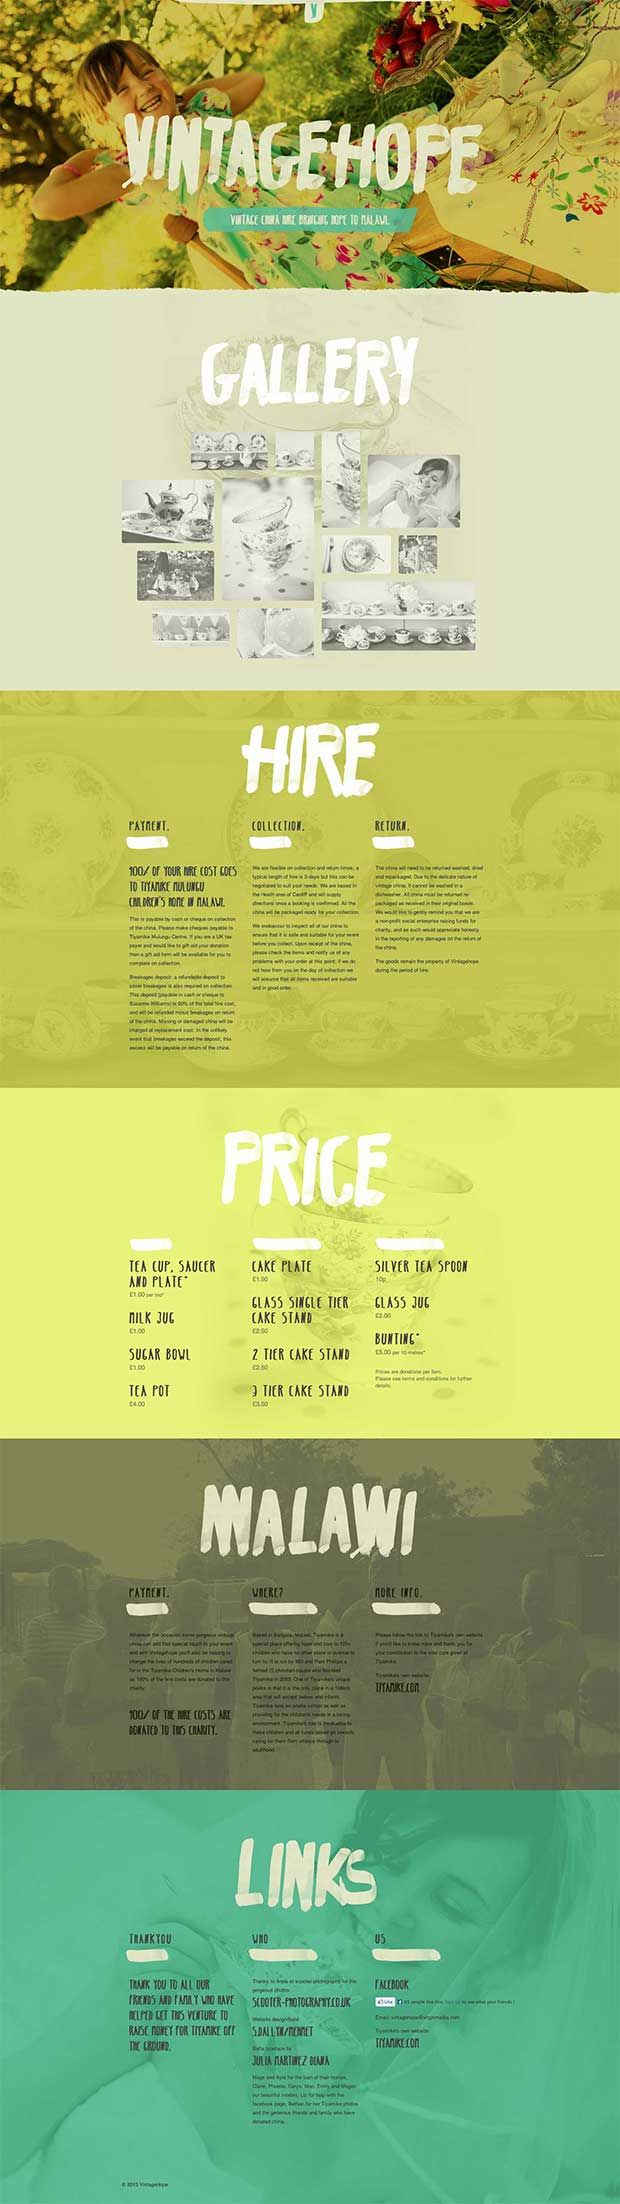 Web design - Graphic design inspiration - Handwritten font - Colorful